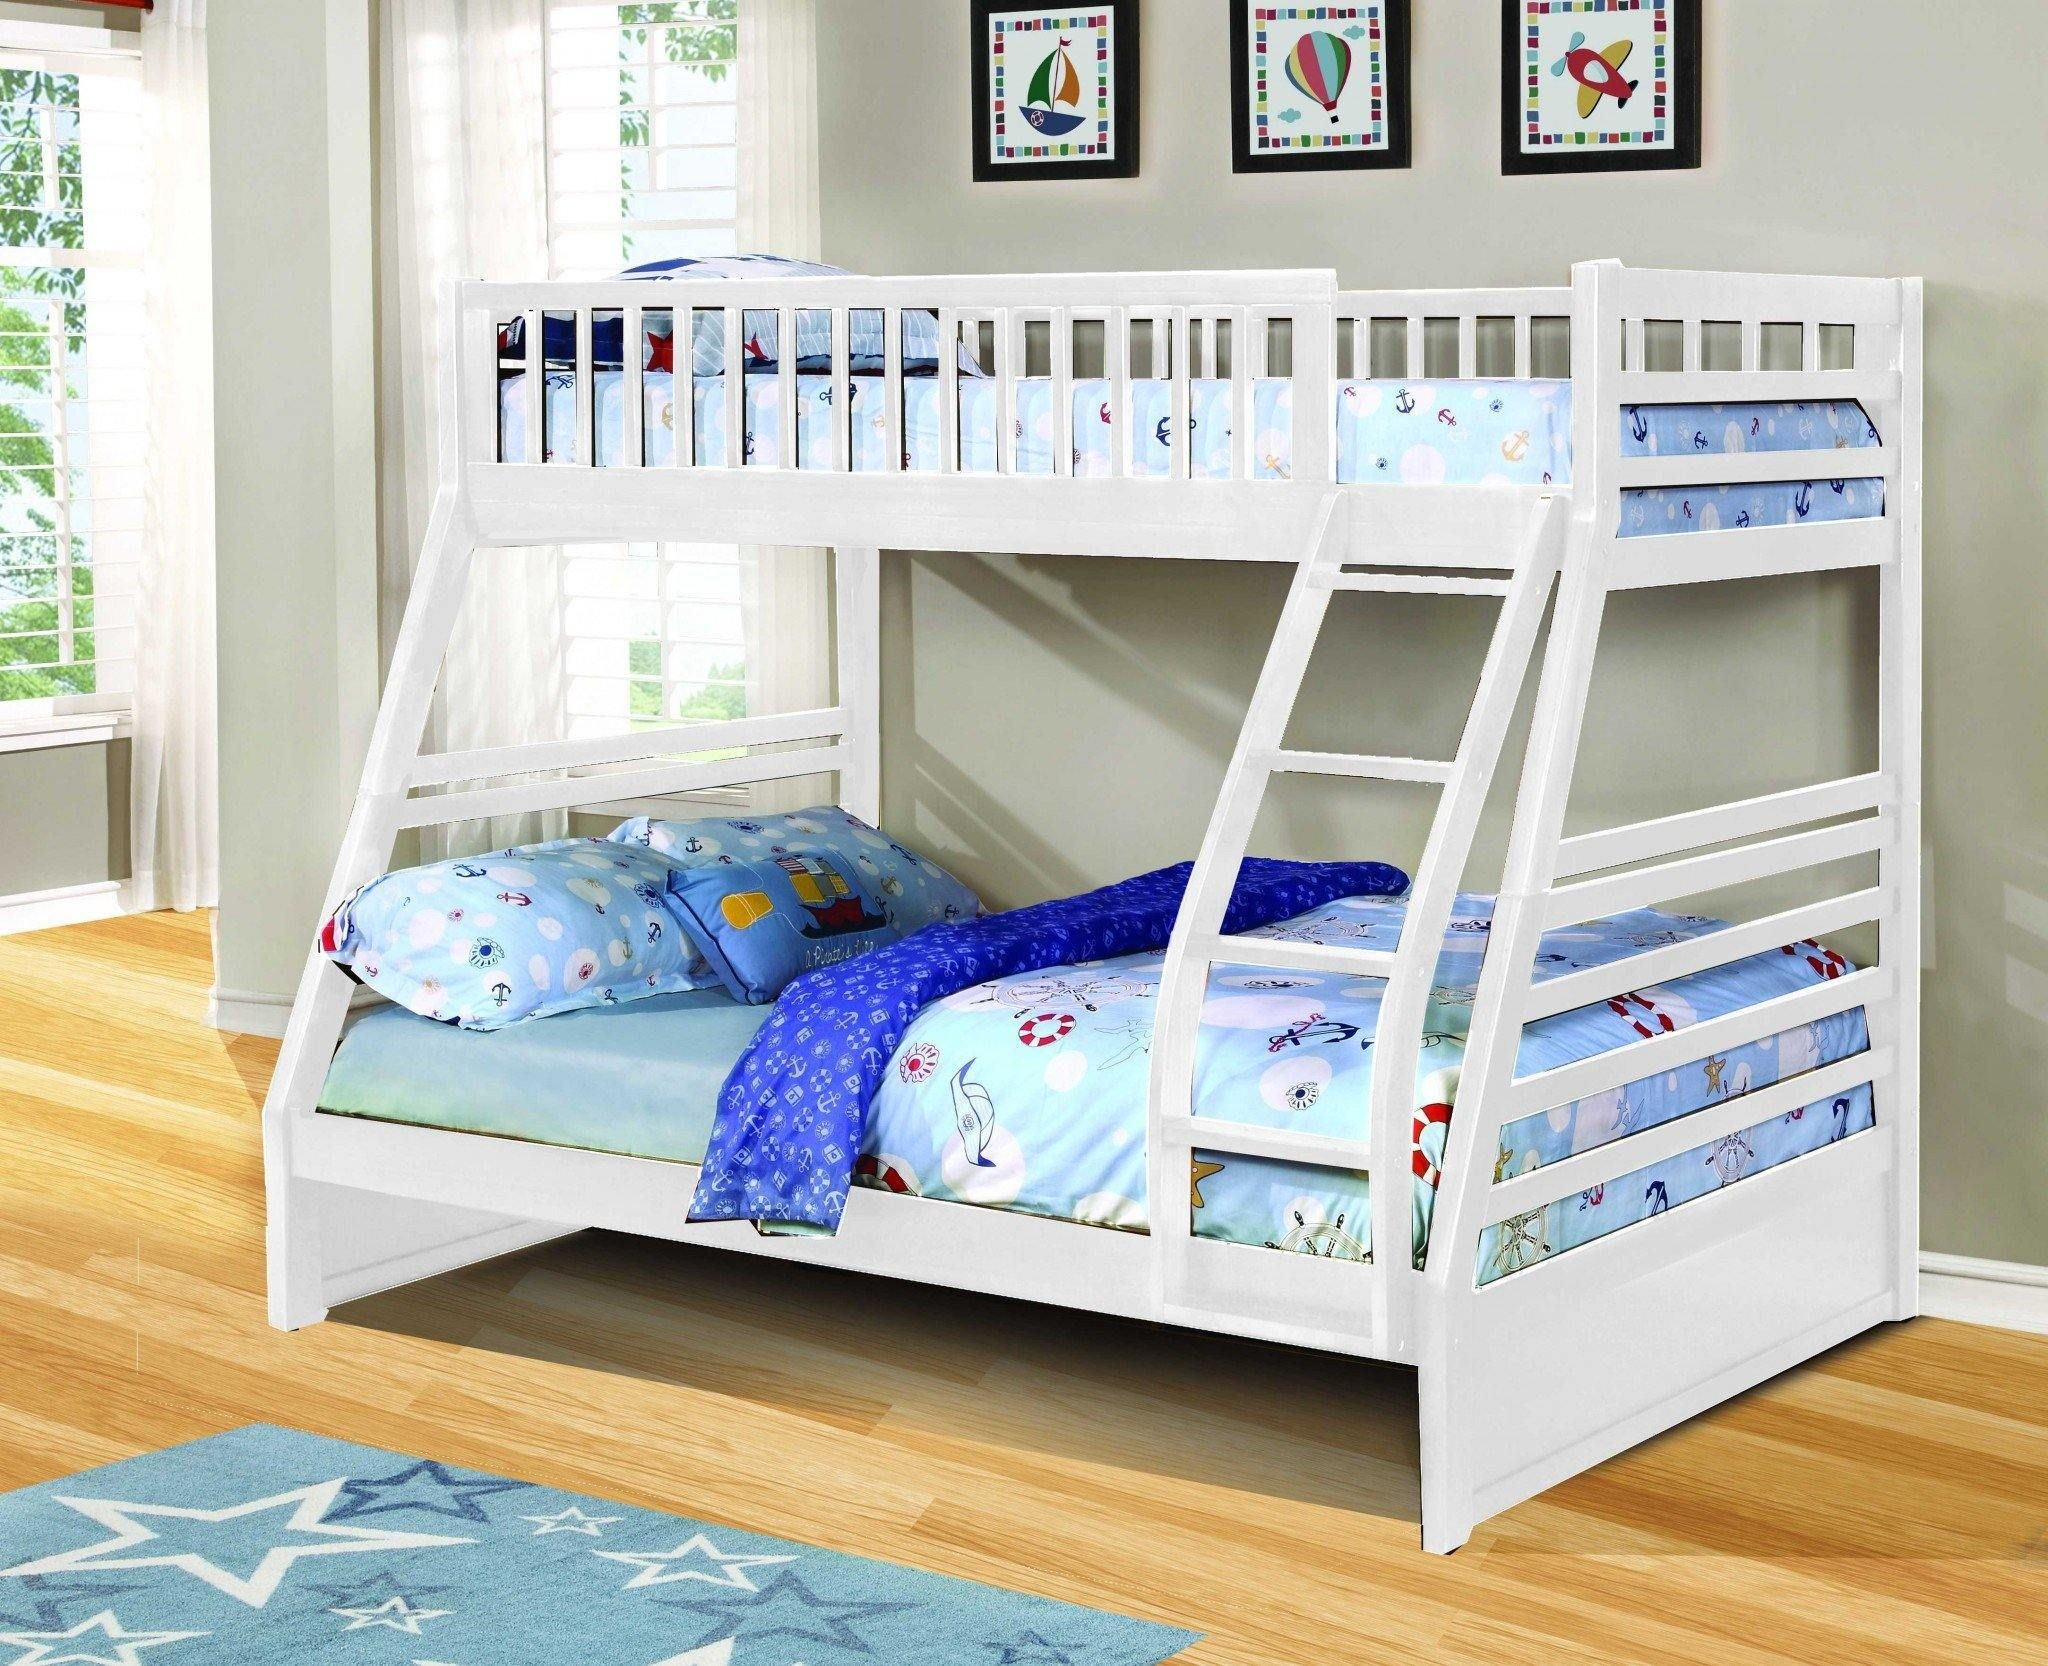 Contemporary White Finish Twin Over Full Bunk Bed In 2021 Bunk Beds With Drawers Bunk Beds With Storage Twin Full Bunk Bed White twin over full bunk bed